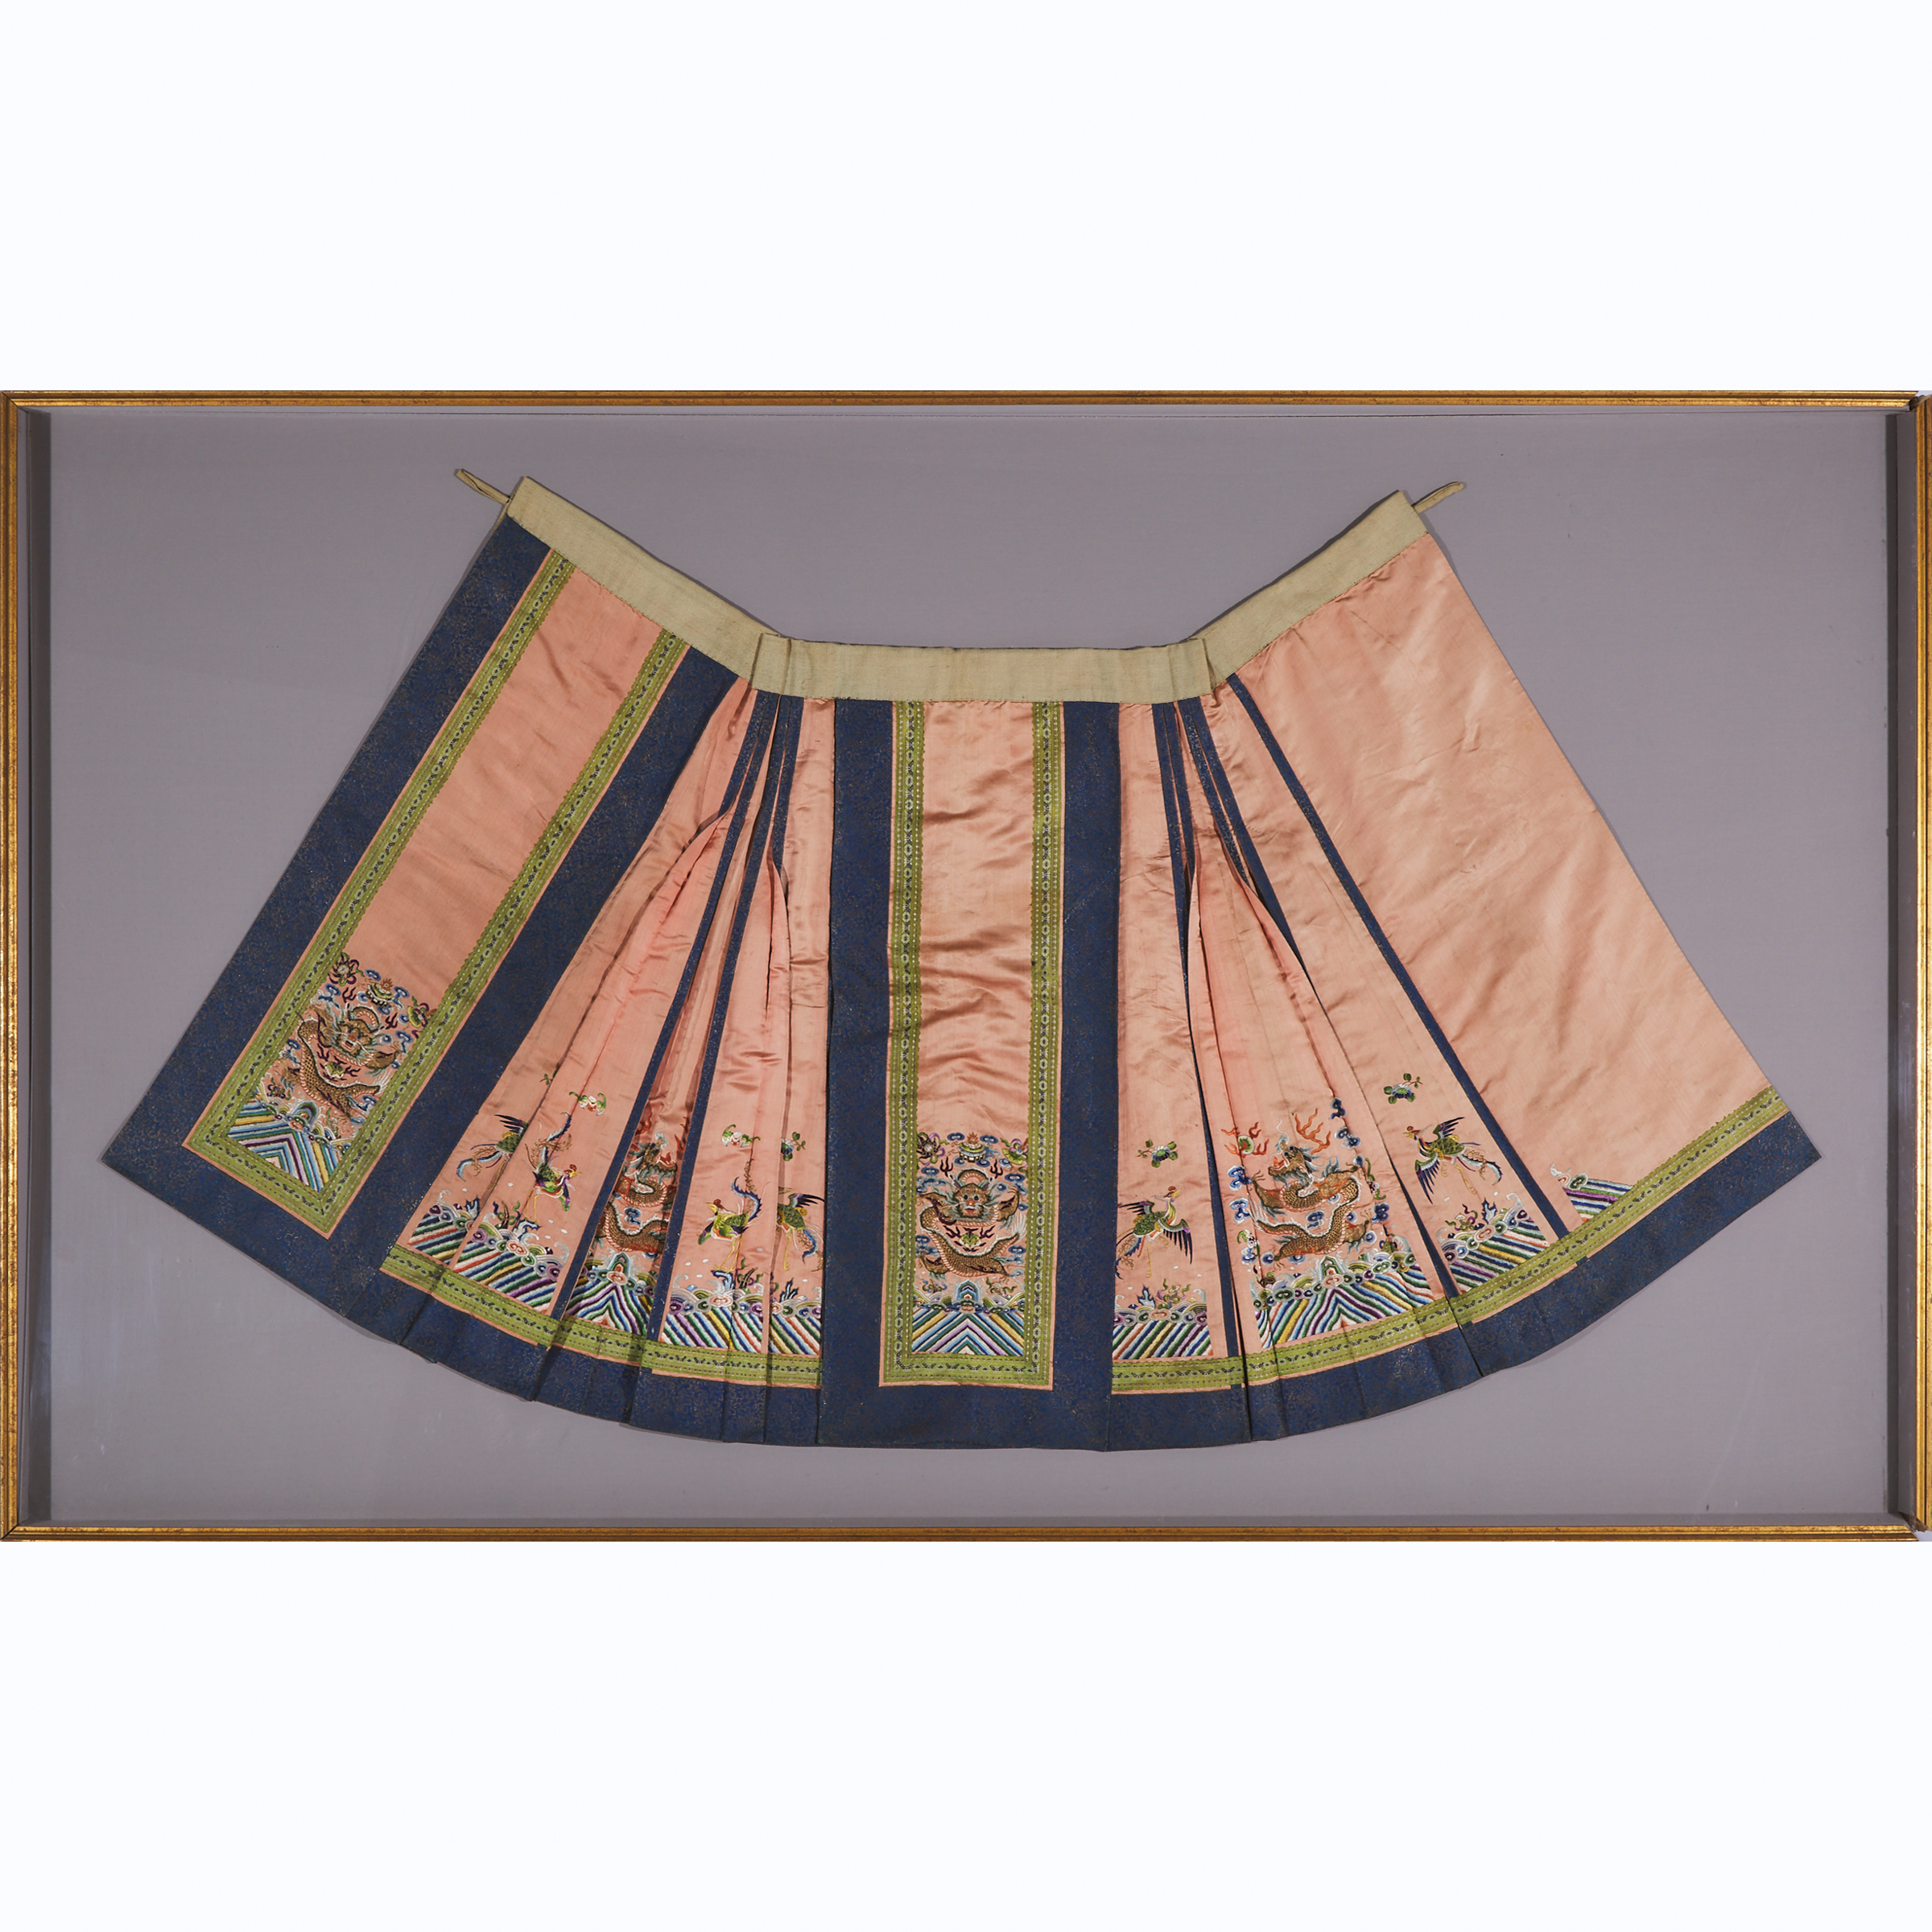 A Large Framed Chinese Silk Embroidered Skirt, Late Qing Dynasty